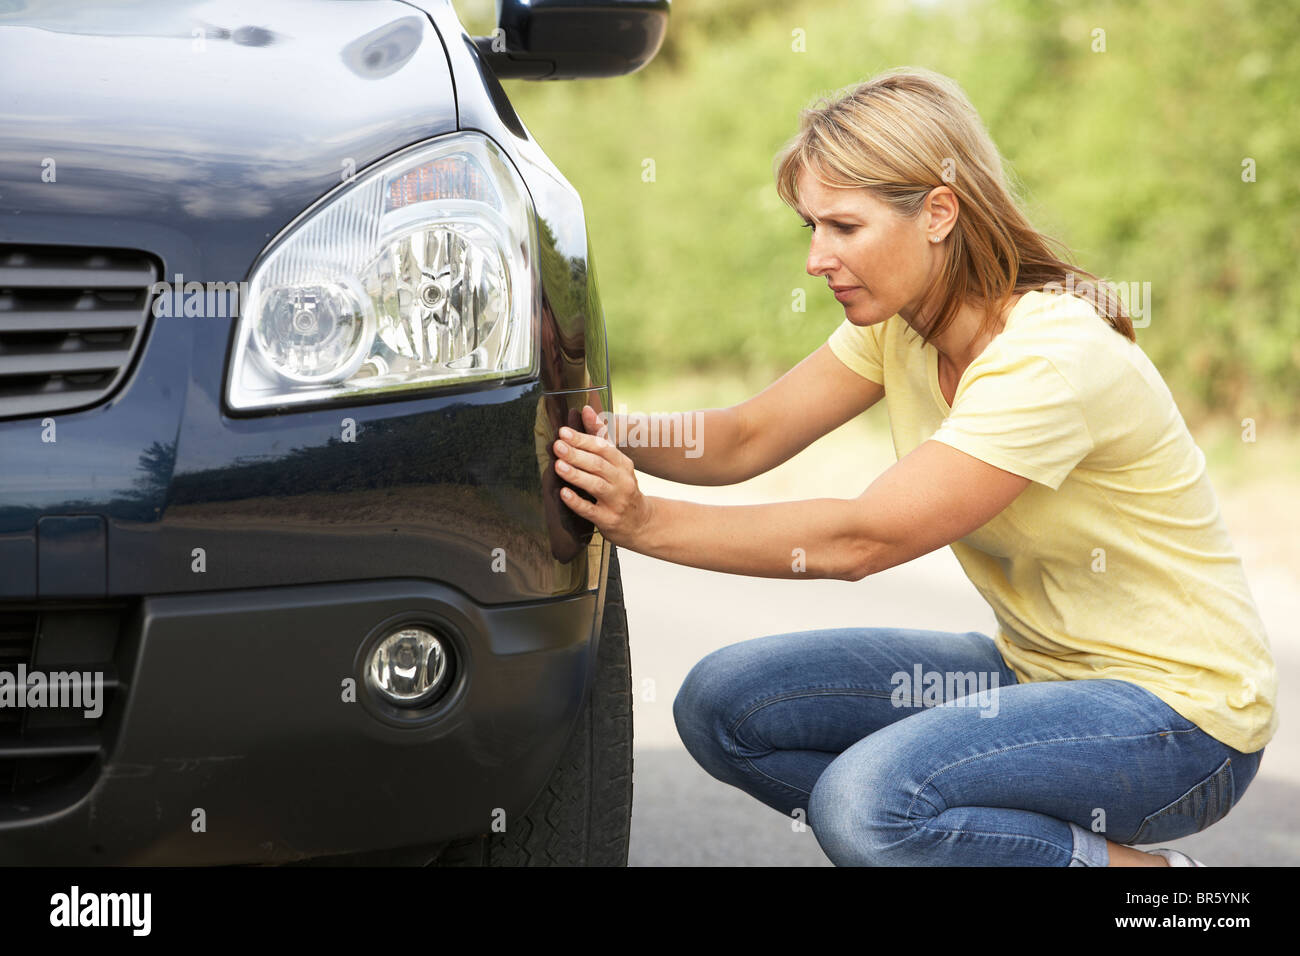 Female Driver Broken Down On Country Road - Stock Image